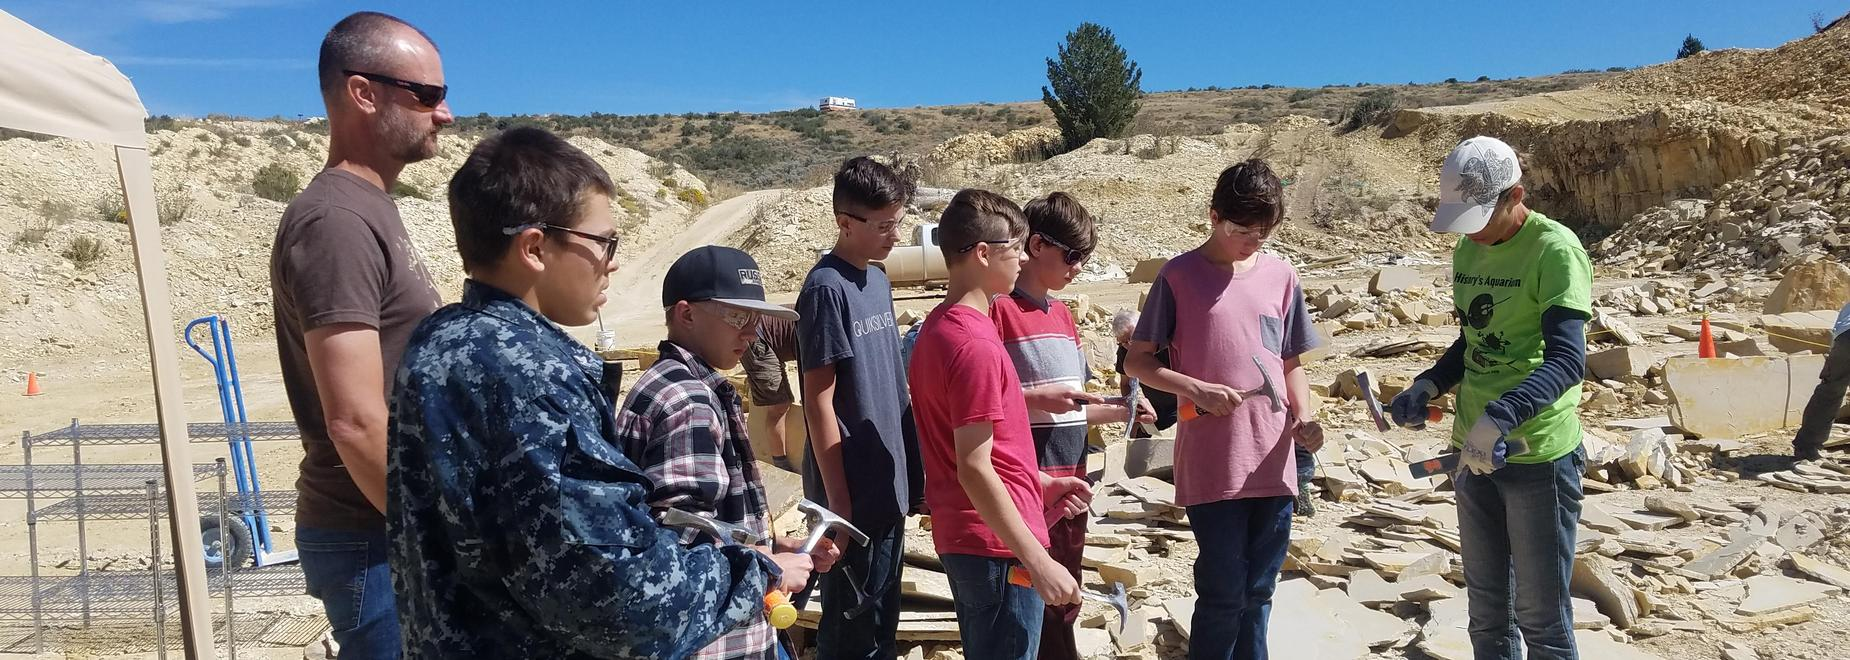 8th Grade Social Studies Class field trip